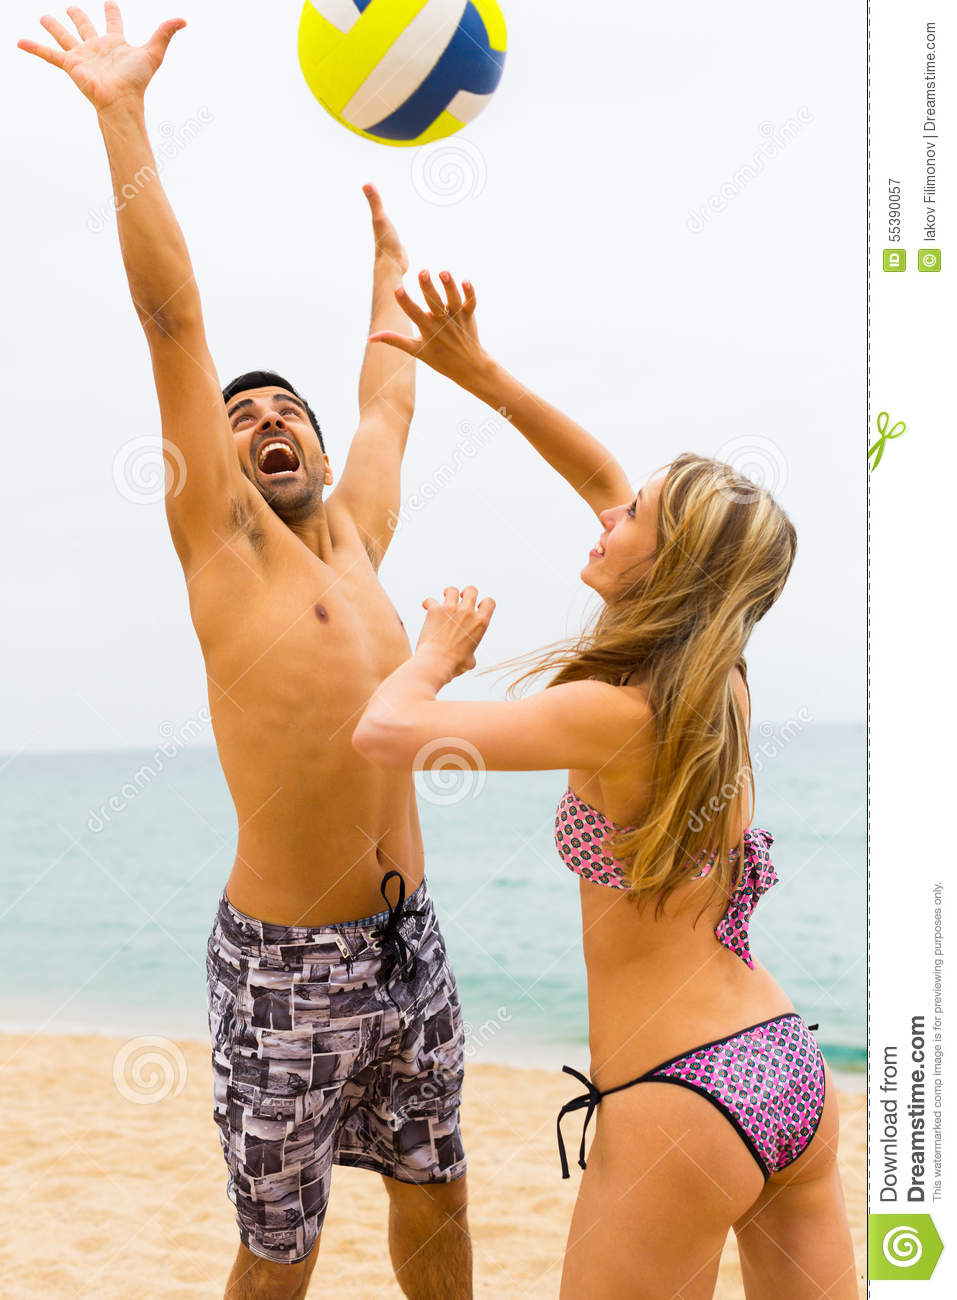 Couple playing with a ball on the beach